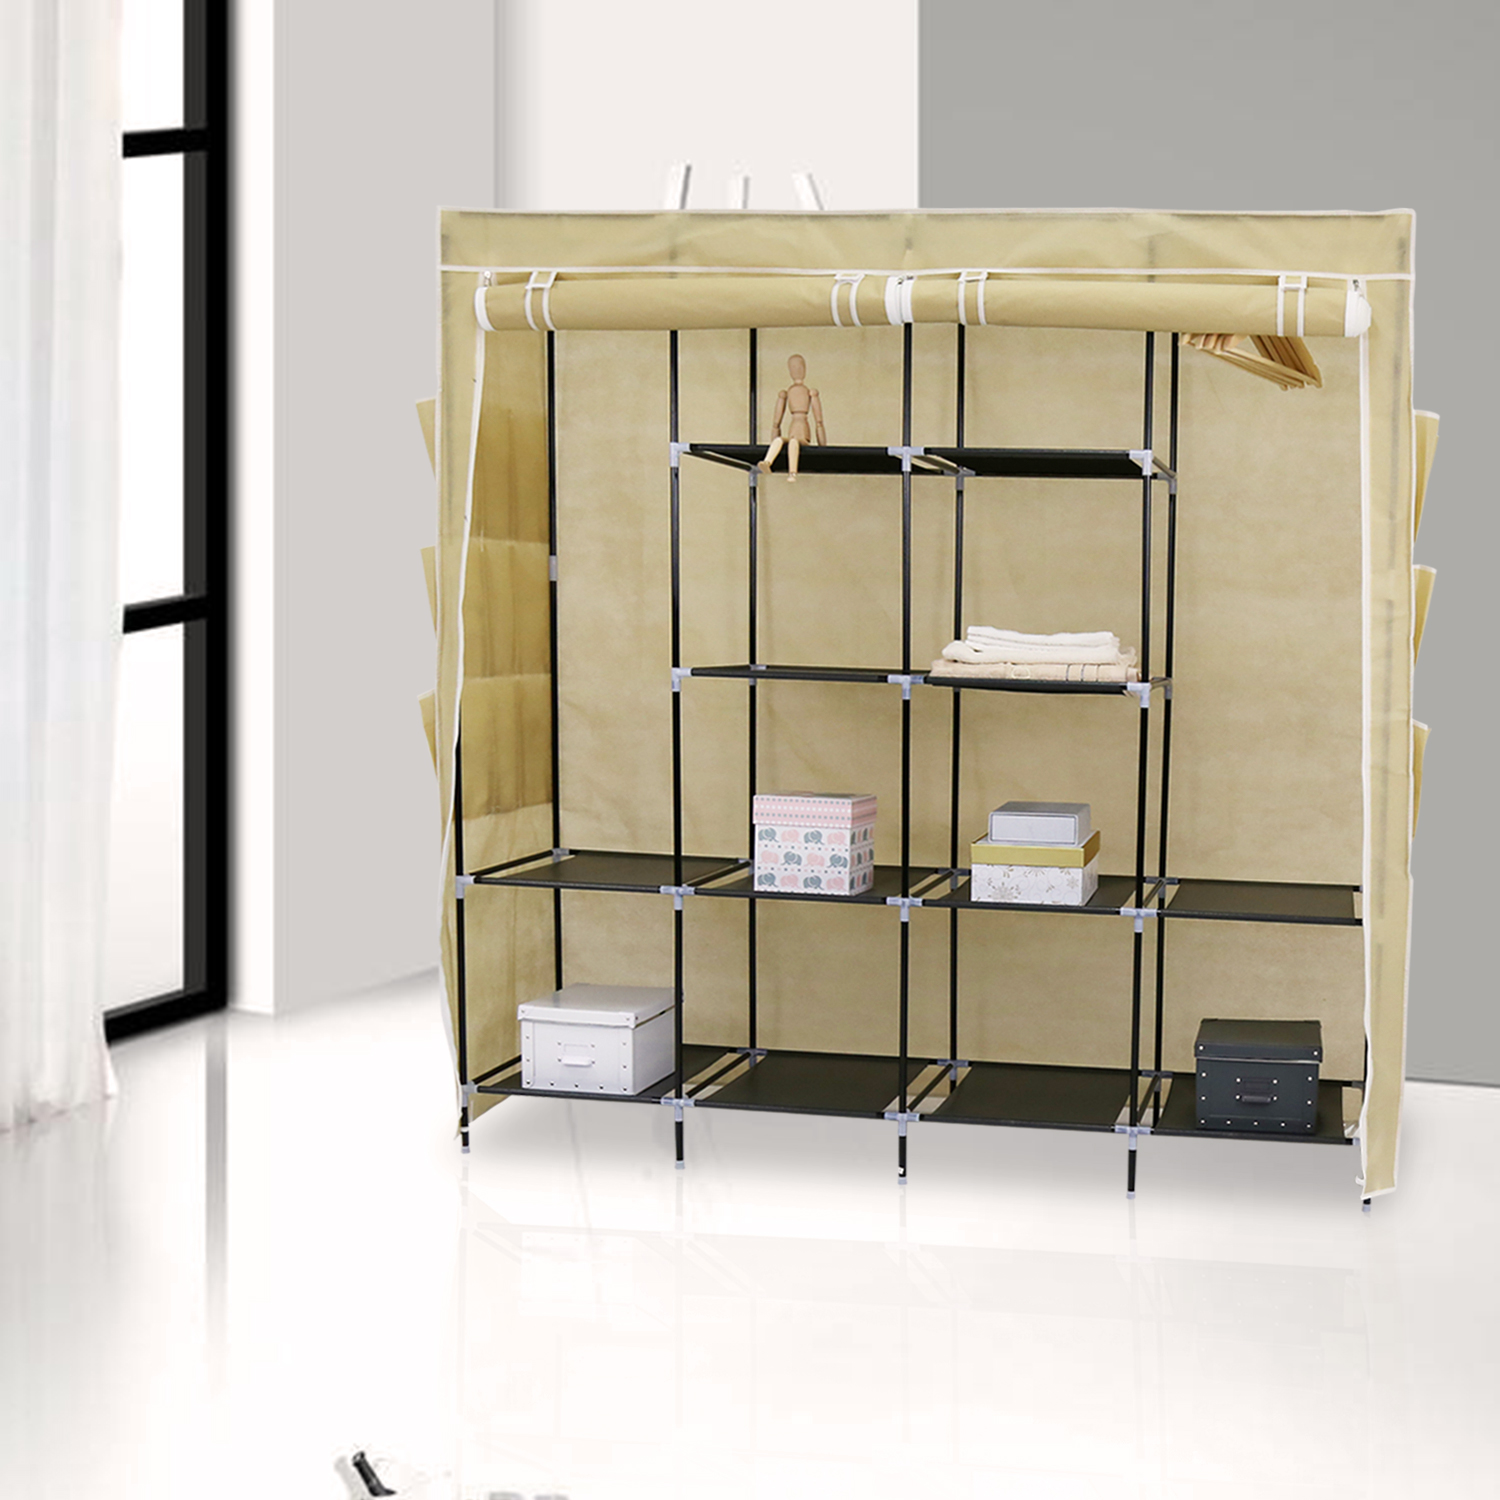 65'' Portable Closet Storage Organizer Wardrobe Clothes Rack with 4 Shelves Beige